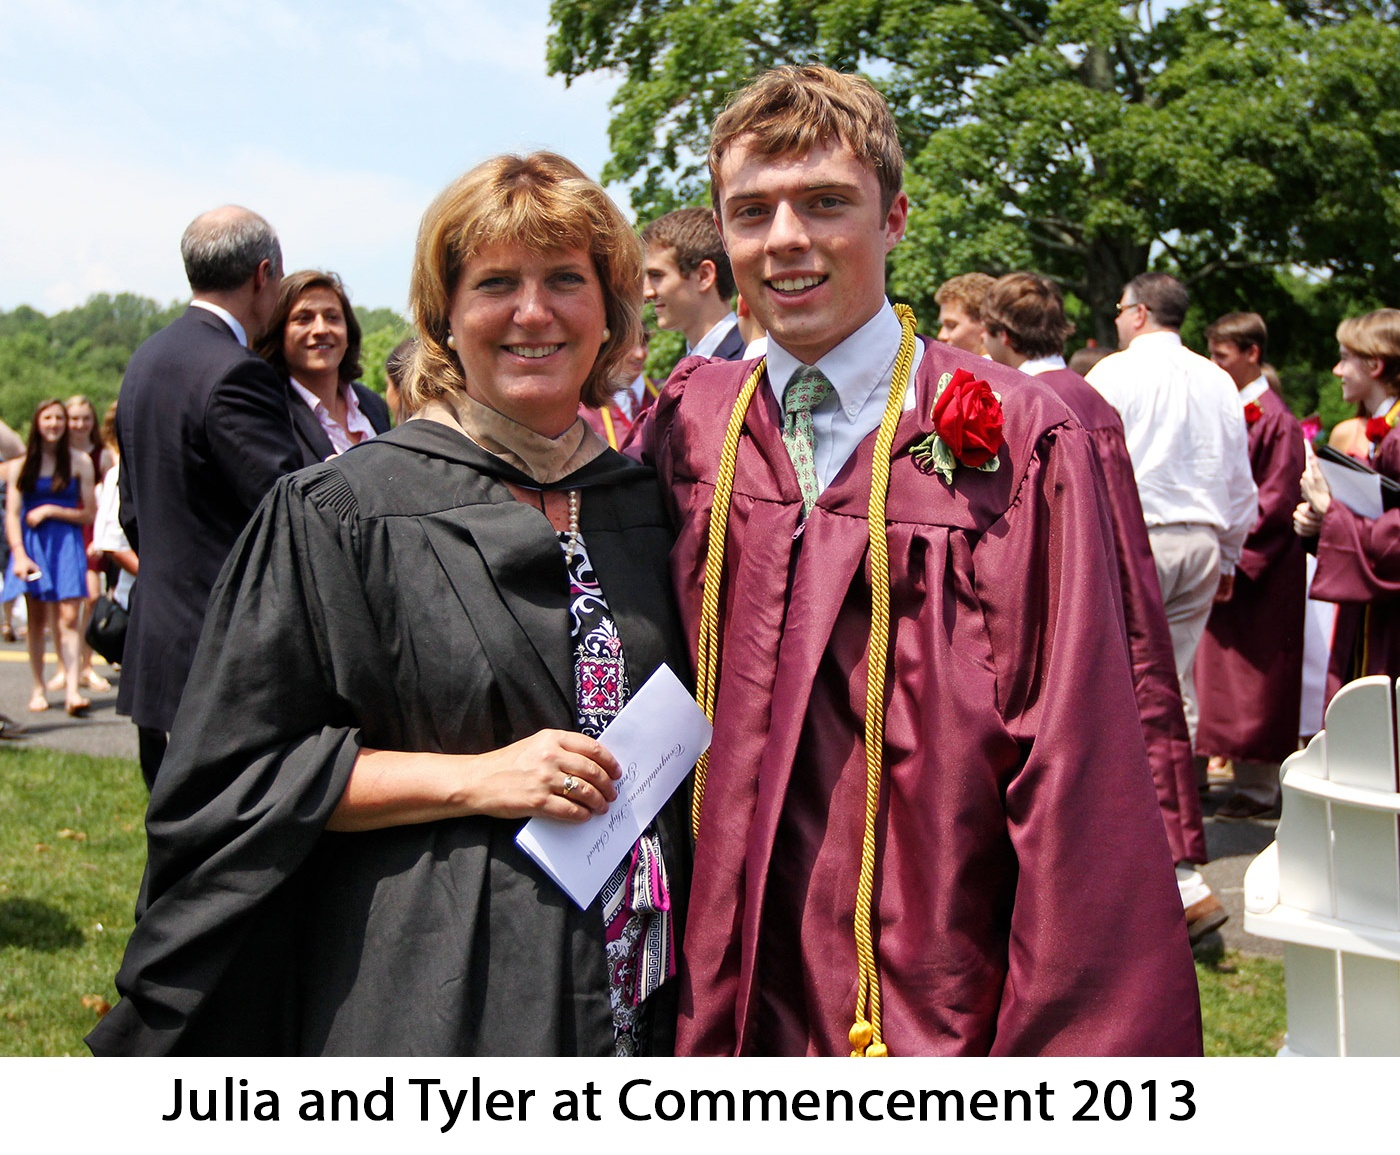 Julia and Tyler St Lukes Commencement